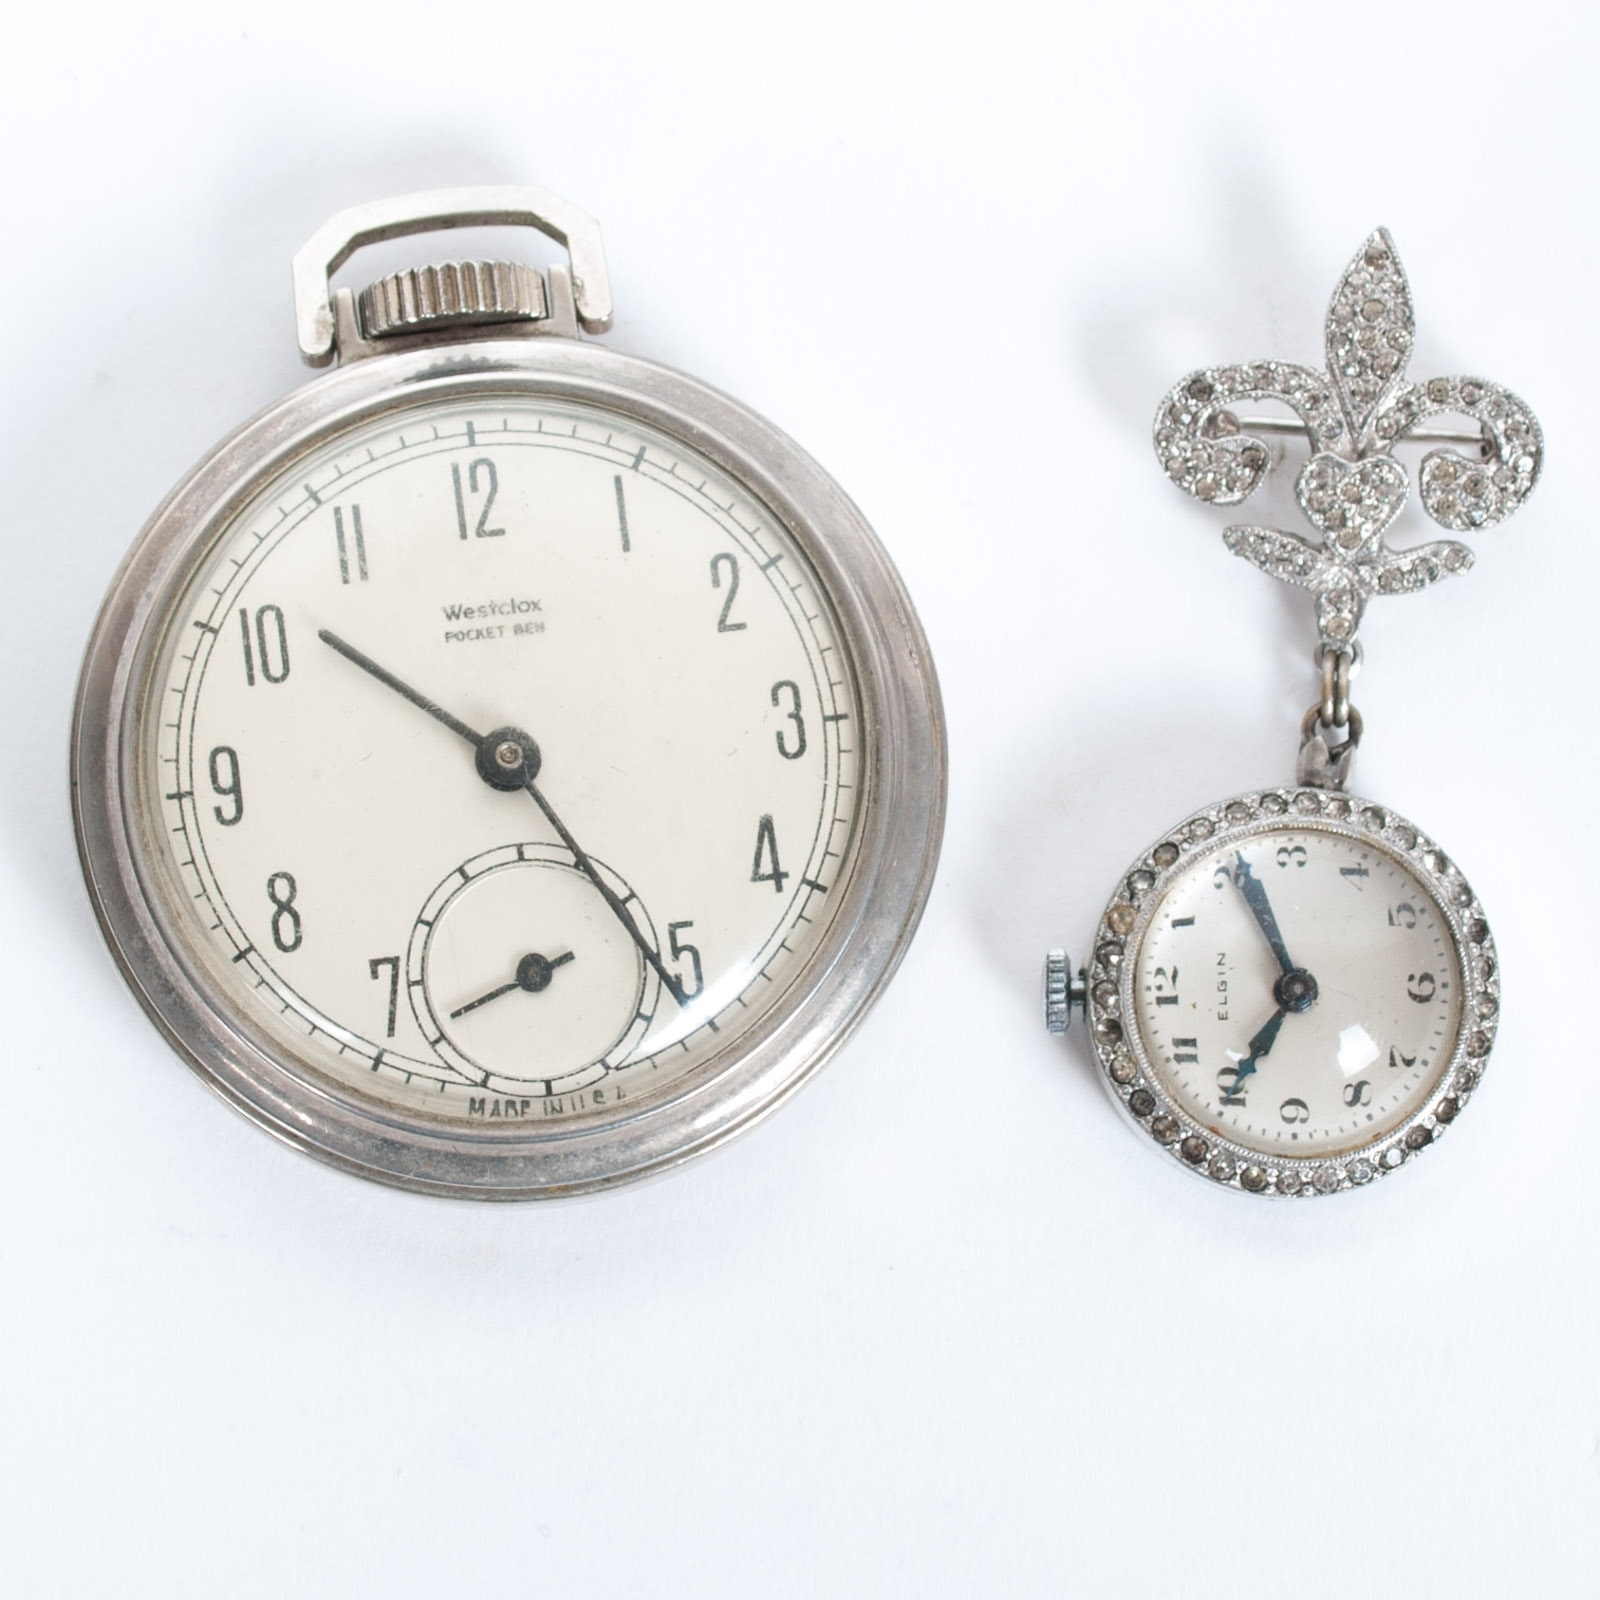 Vintage Elgin Pin Watch with Glass Crystals and Westclox Open Face Pocket Watch